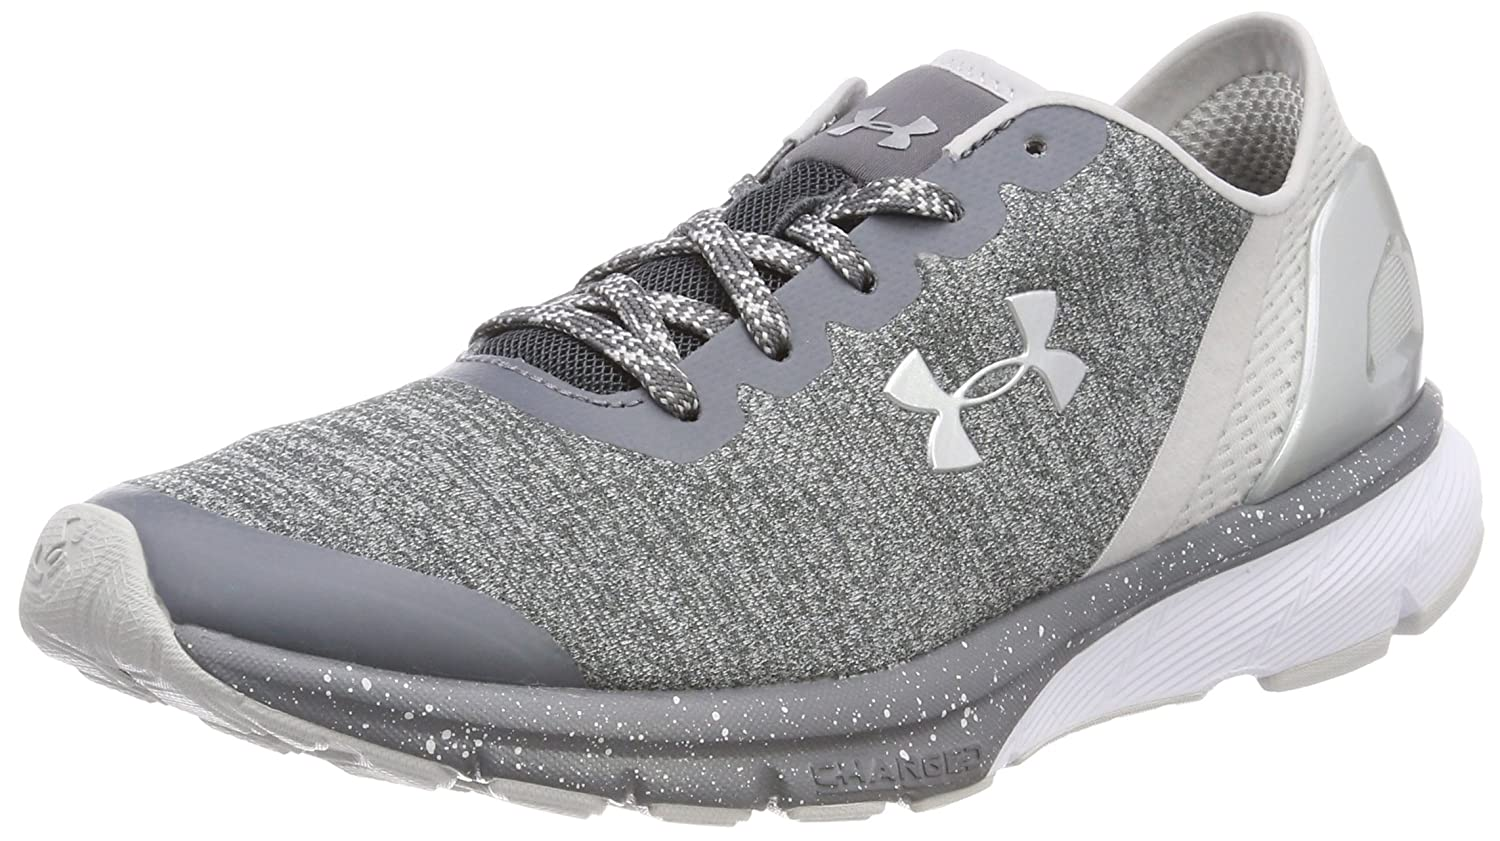 Under Armour Women's Charged Escape Running Shoes B - SS18 B075MPL2GT 8/ B Shoes US Womens|Grey c92ad1